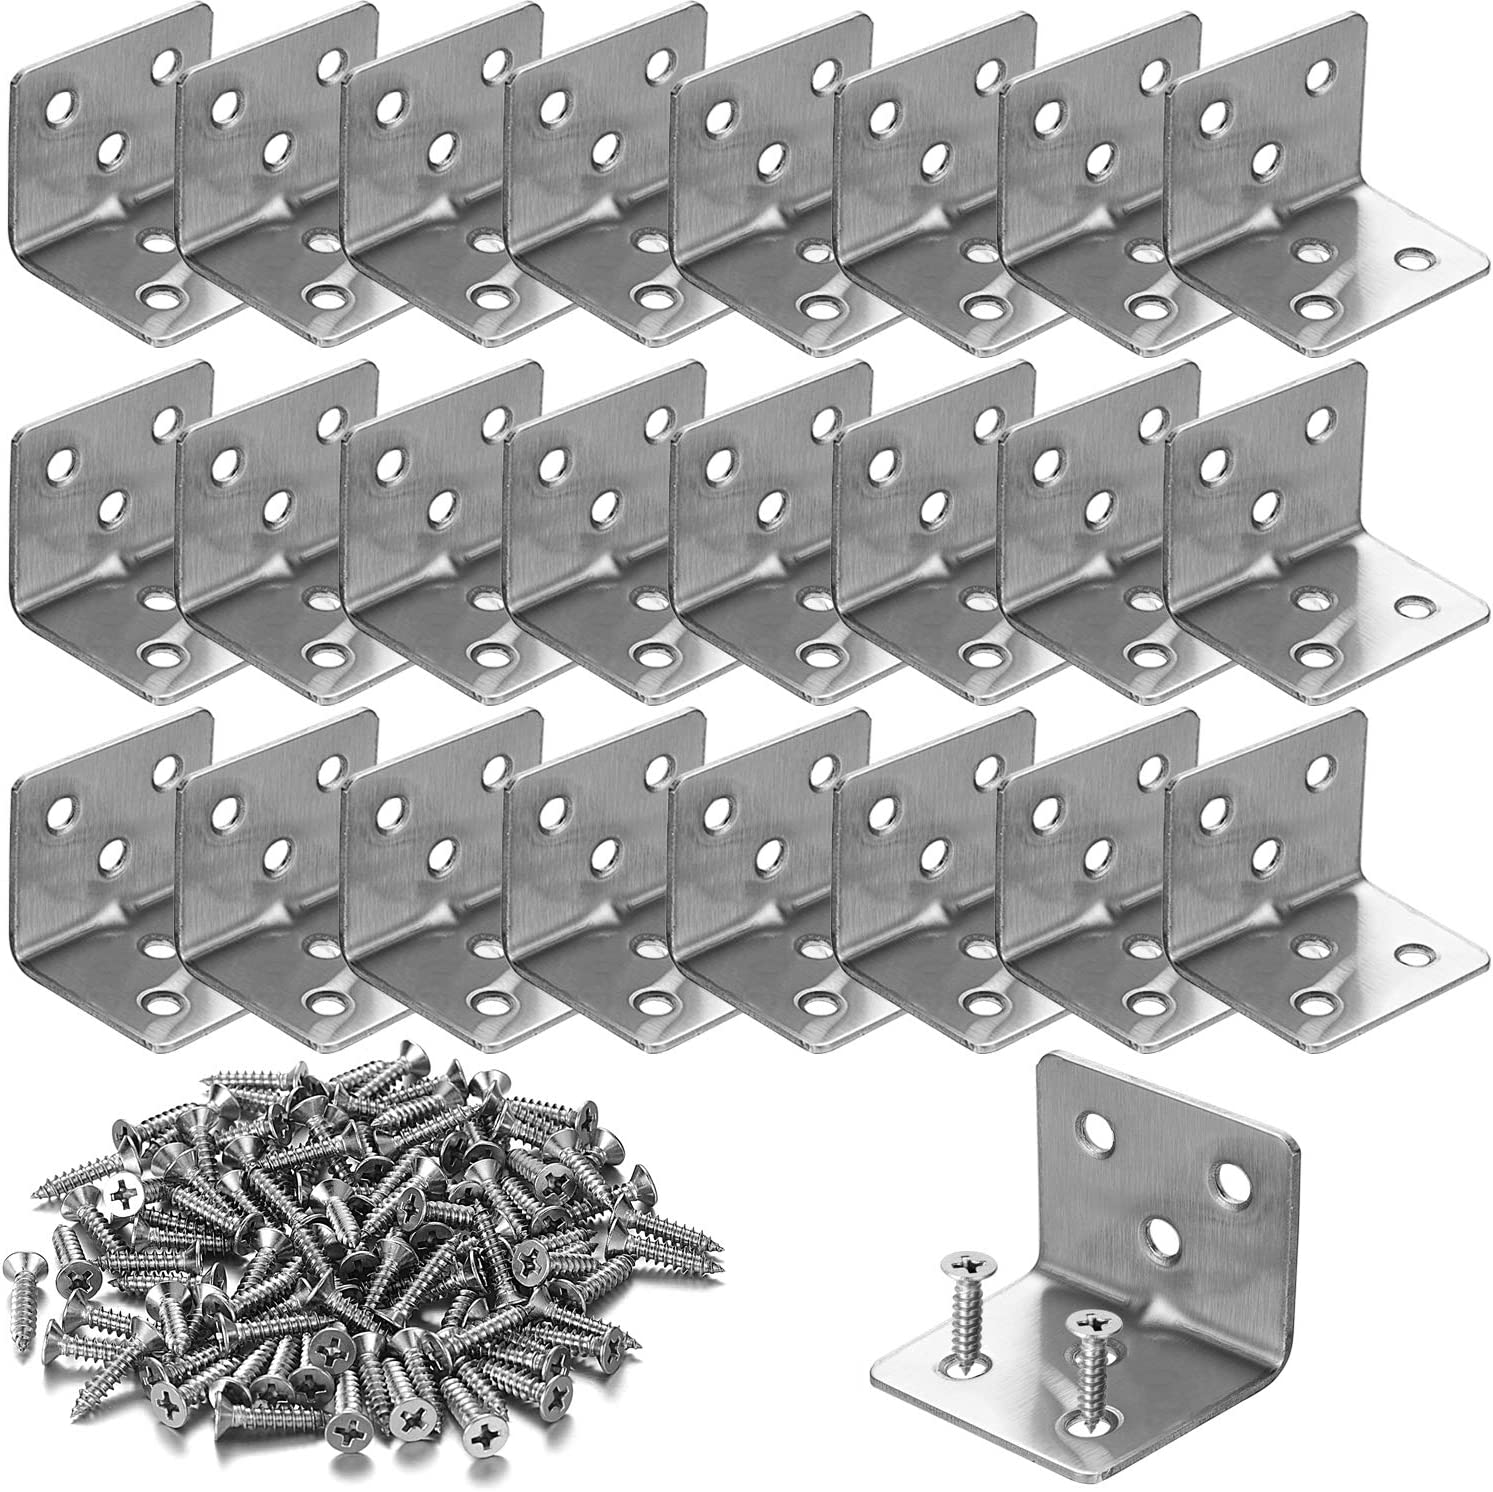 """24 PCS Stainless Steel L Corner Brackets Heavy Duty Corner Braces 1.2"""" x 1.2"""" x 1.5"""", 6 Hole 90 Degree Joint Right Angle L Shape Bracket for Wood Cabinets Furniture"""